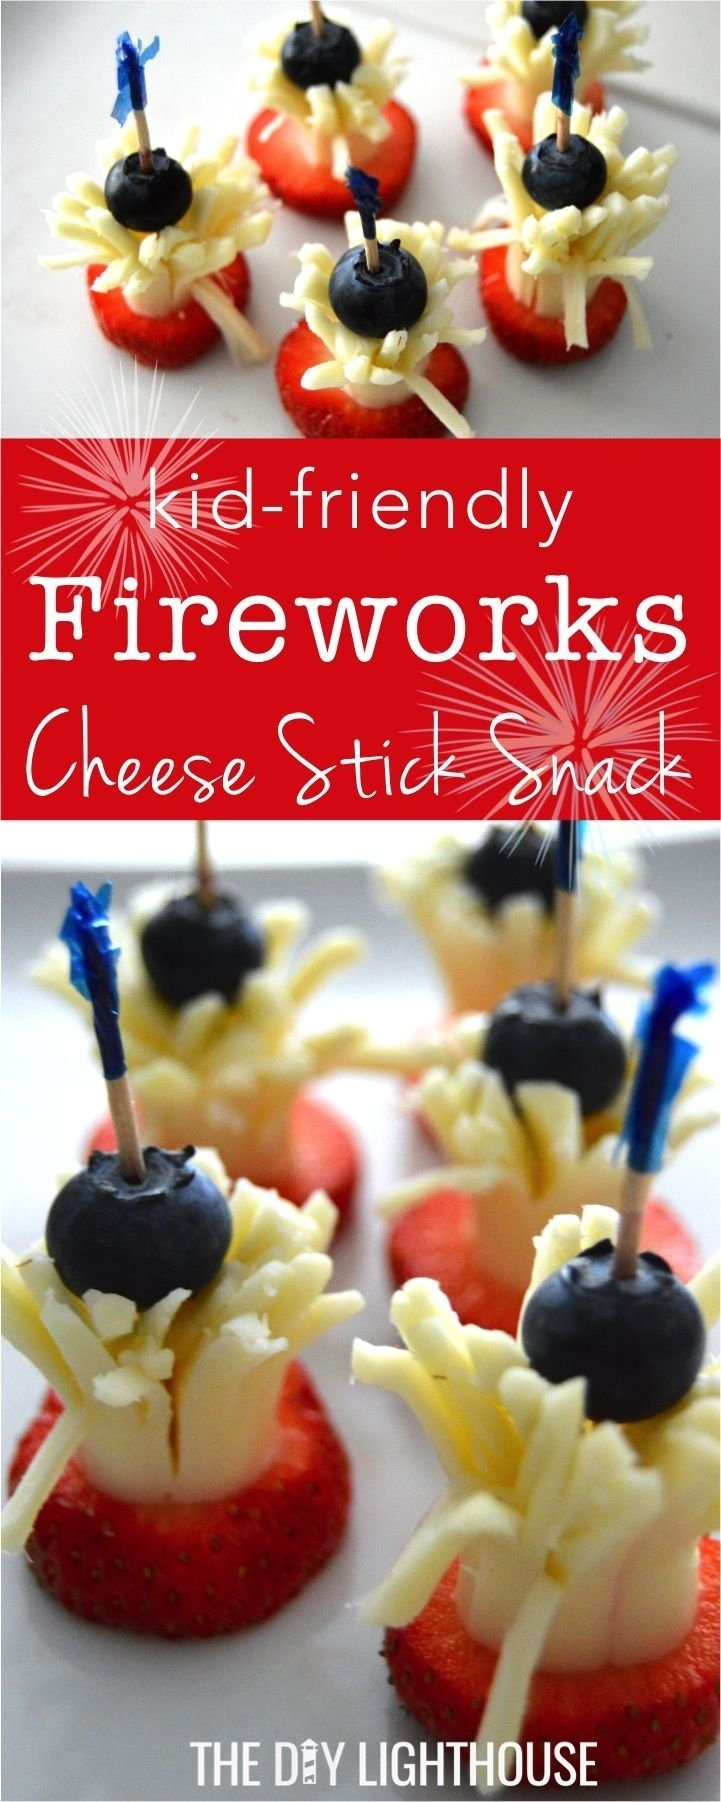 10 Perfect Fourth Of July Picnic Ideas fourth of july fireworks cheese stick snack fun fruit snacks 1 2021